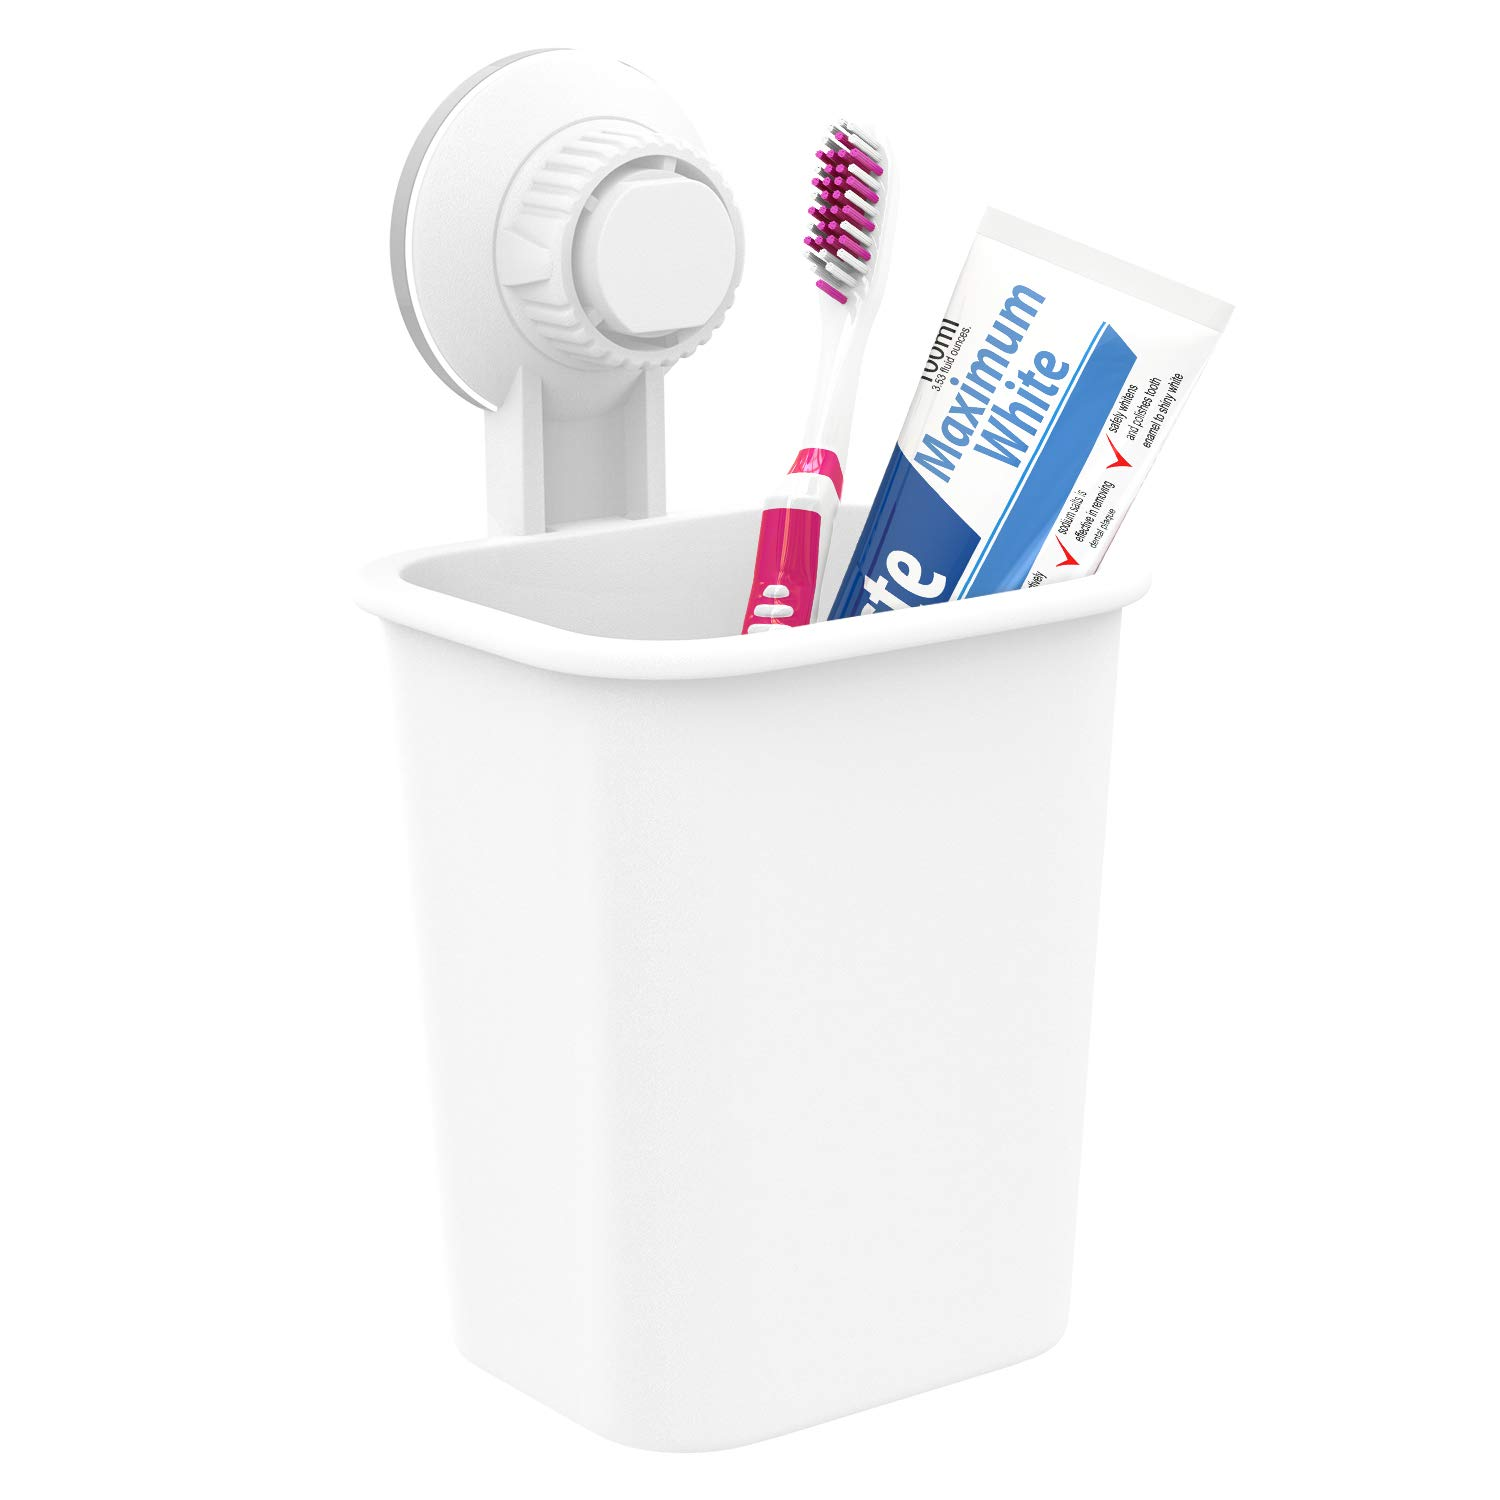 Luxspire Toothbrush Holder with Suction Cup, Toothpaste Stand Toothbrush Storage Organizer Wall Mounted for Bathroom - White